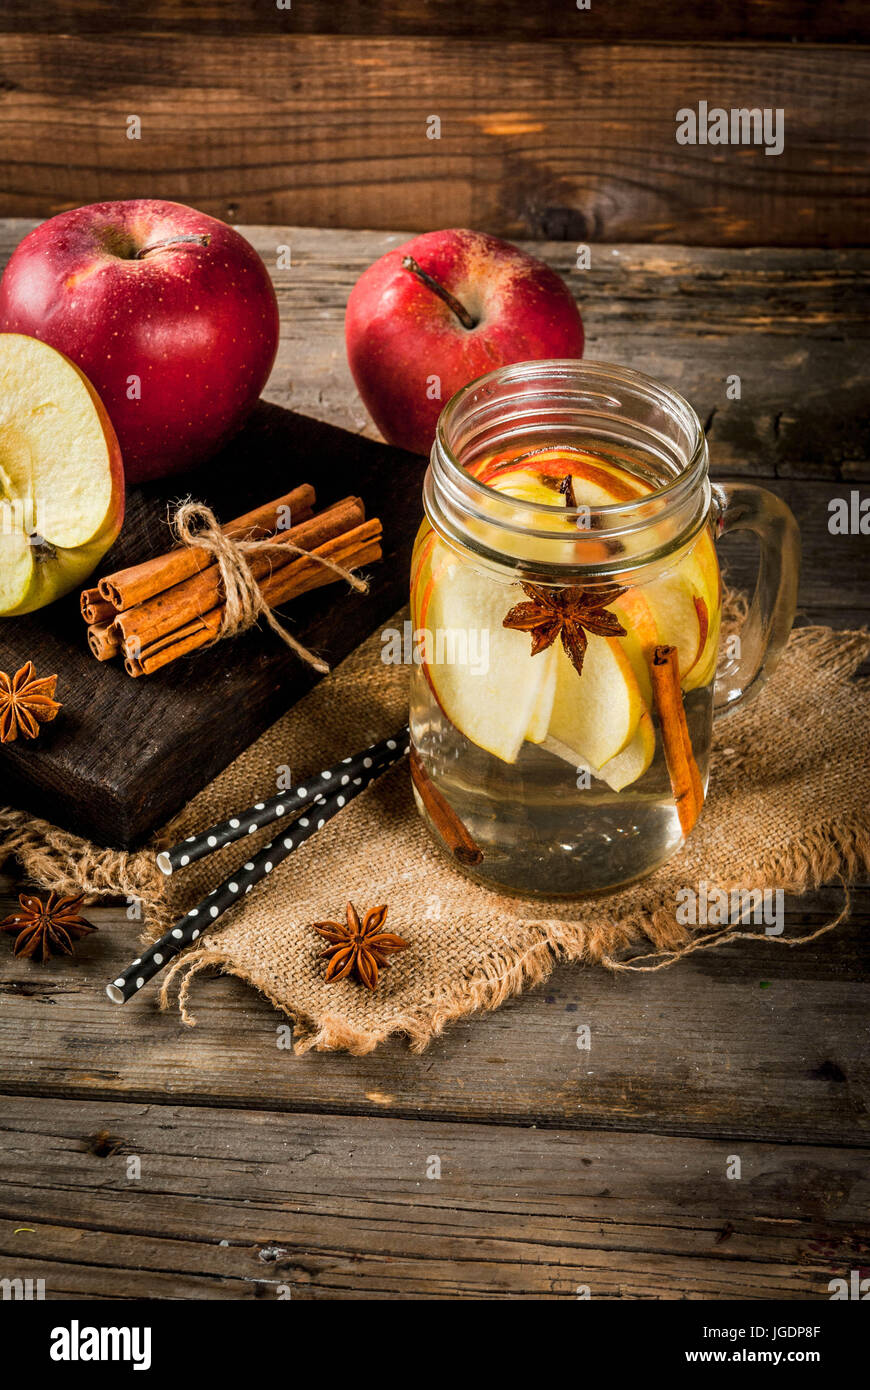 Autumn Detox Water With Apple Cinnamon And Pear In Mason Jar On A Rustic Old Wood Background Ingredients Copy Space